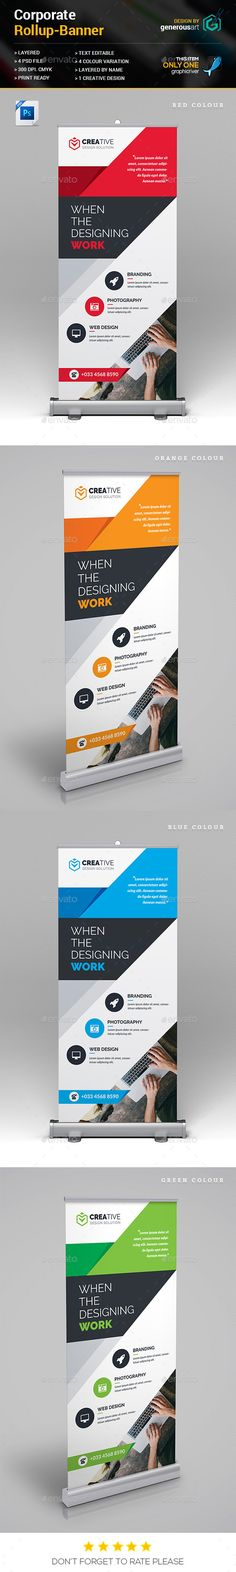 Rollup Banner — Photoshop PSD #both side design #modern design • Available here → https://graphicriver.net/item/rollup-banner/18047322?ref=pxcr